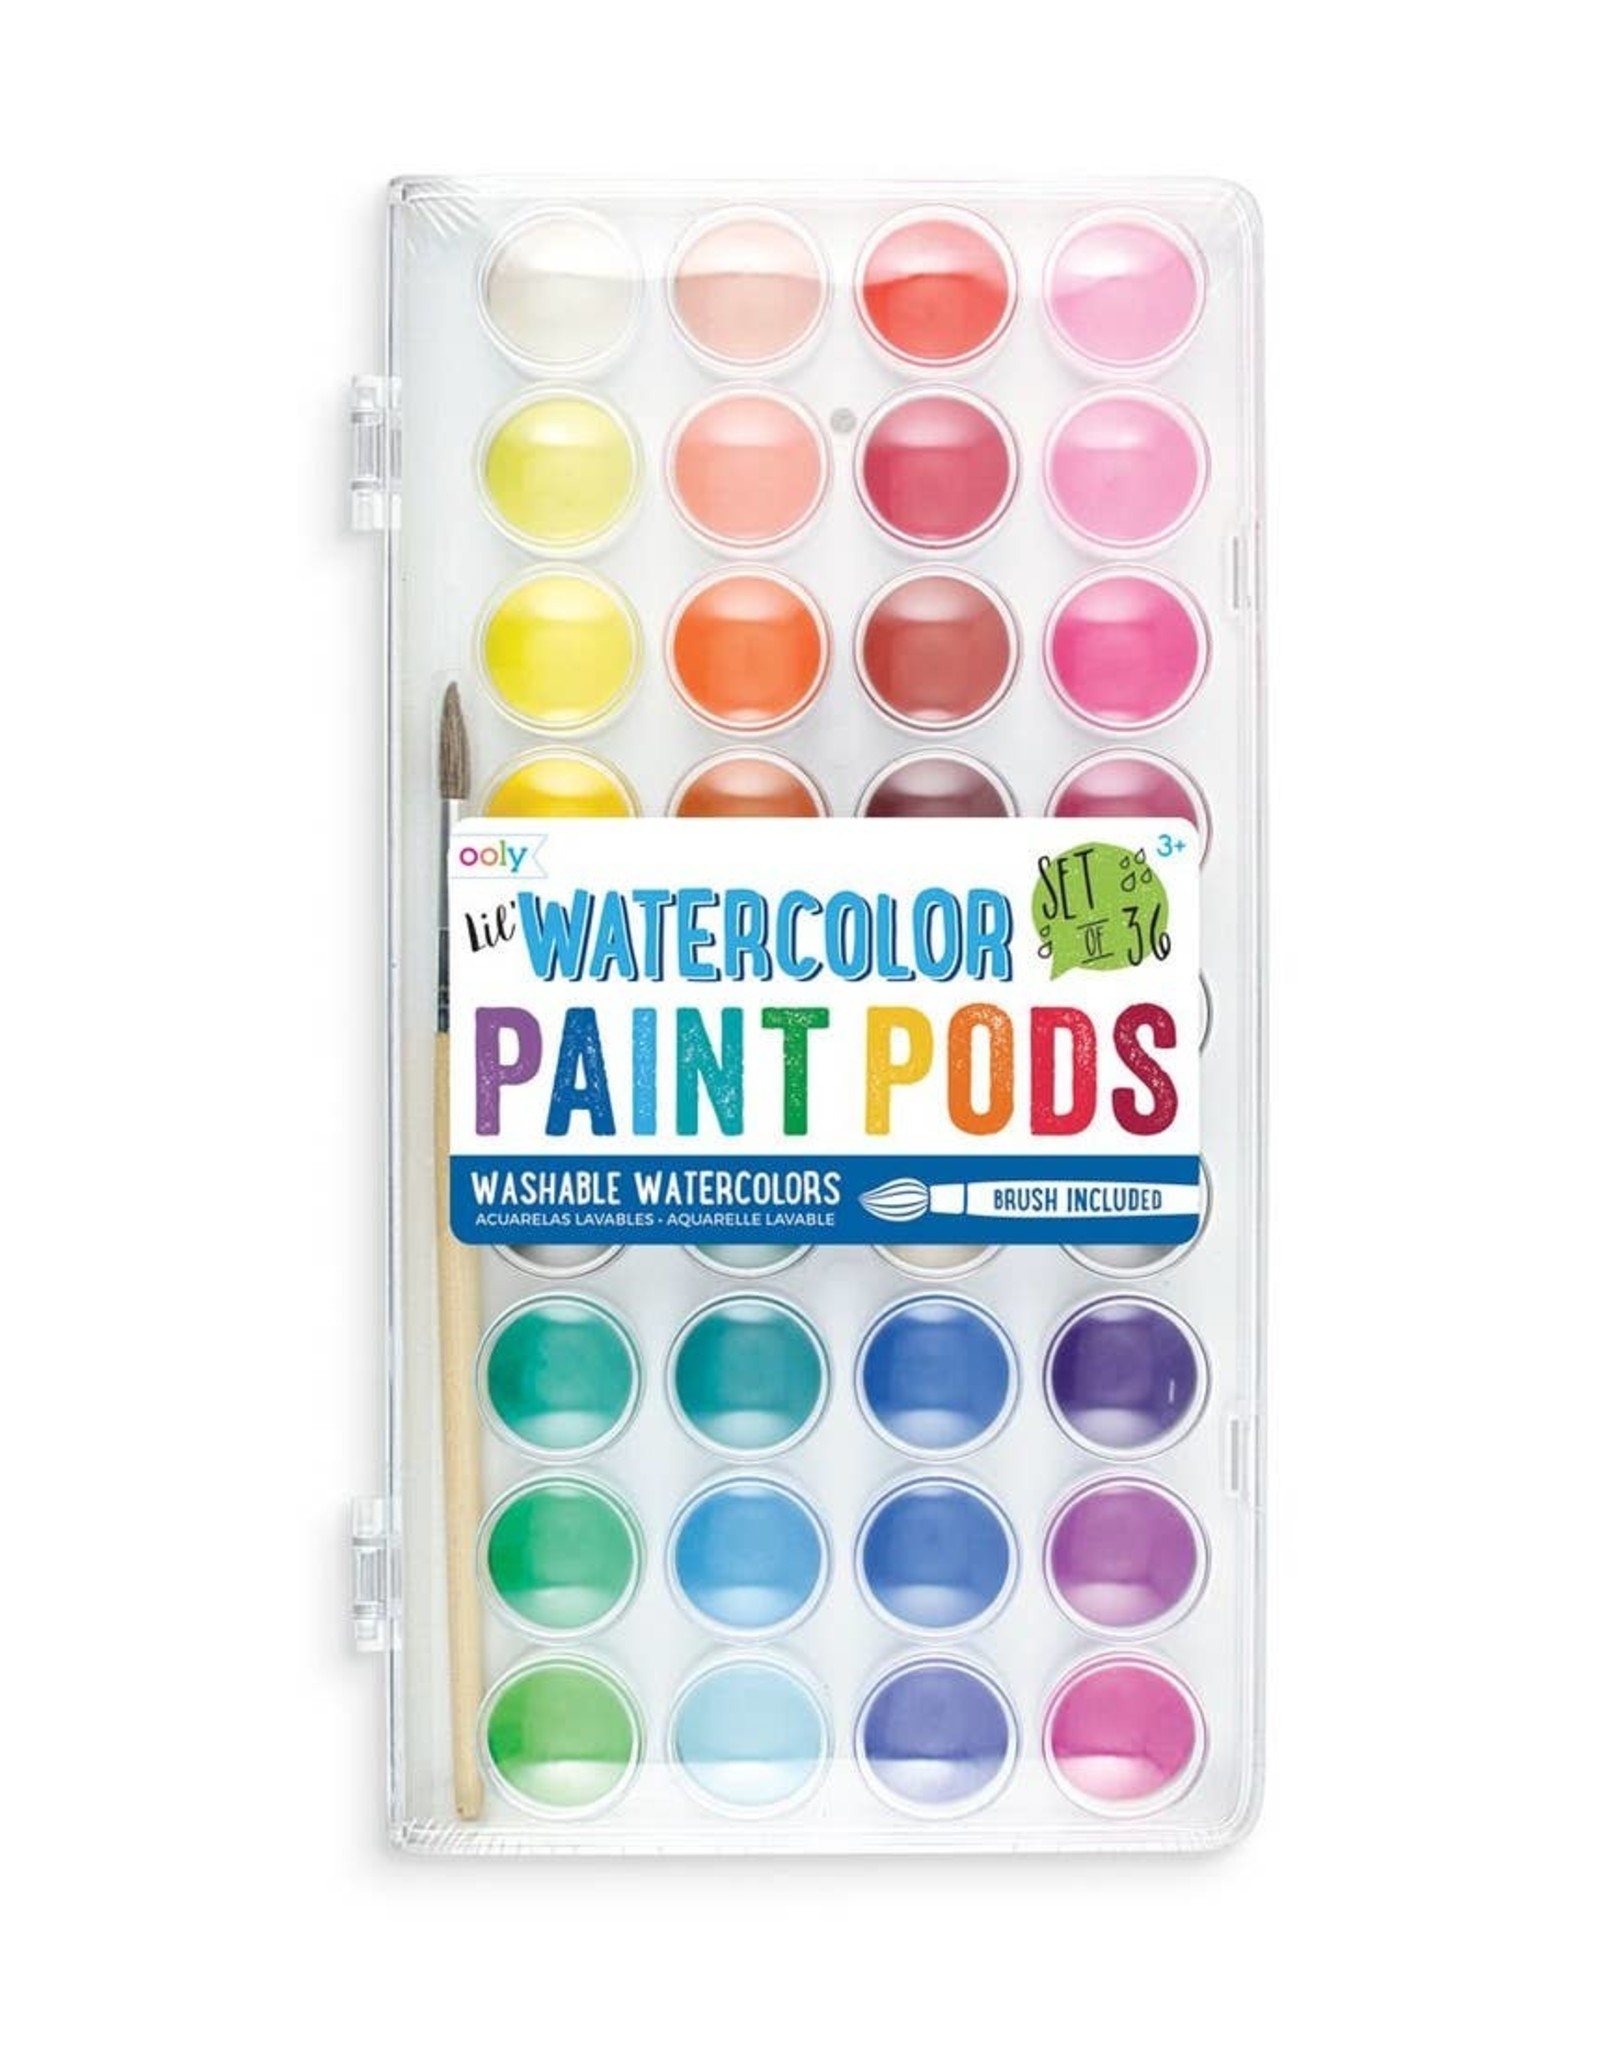 Ooly Ooly | Lil' Paint Pods Watercolor Paint